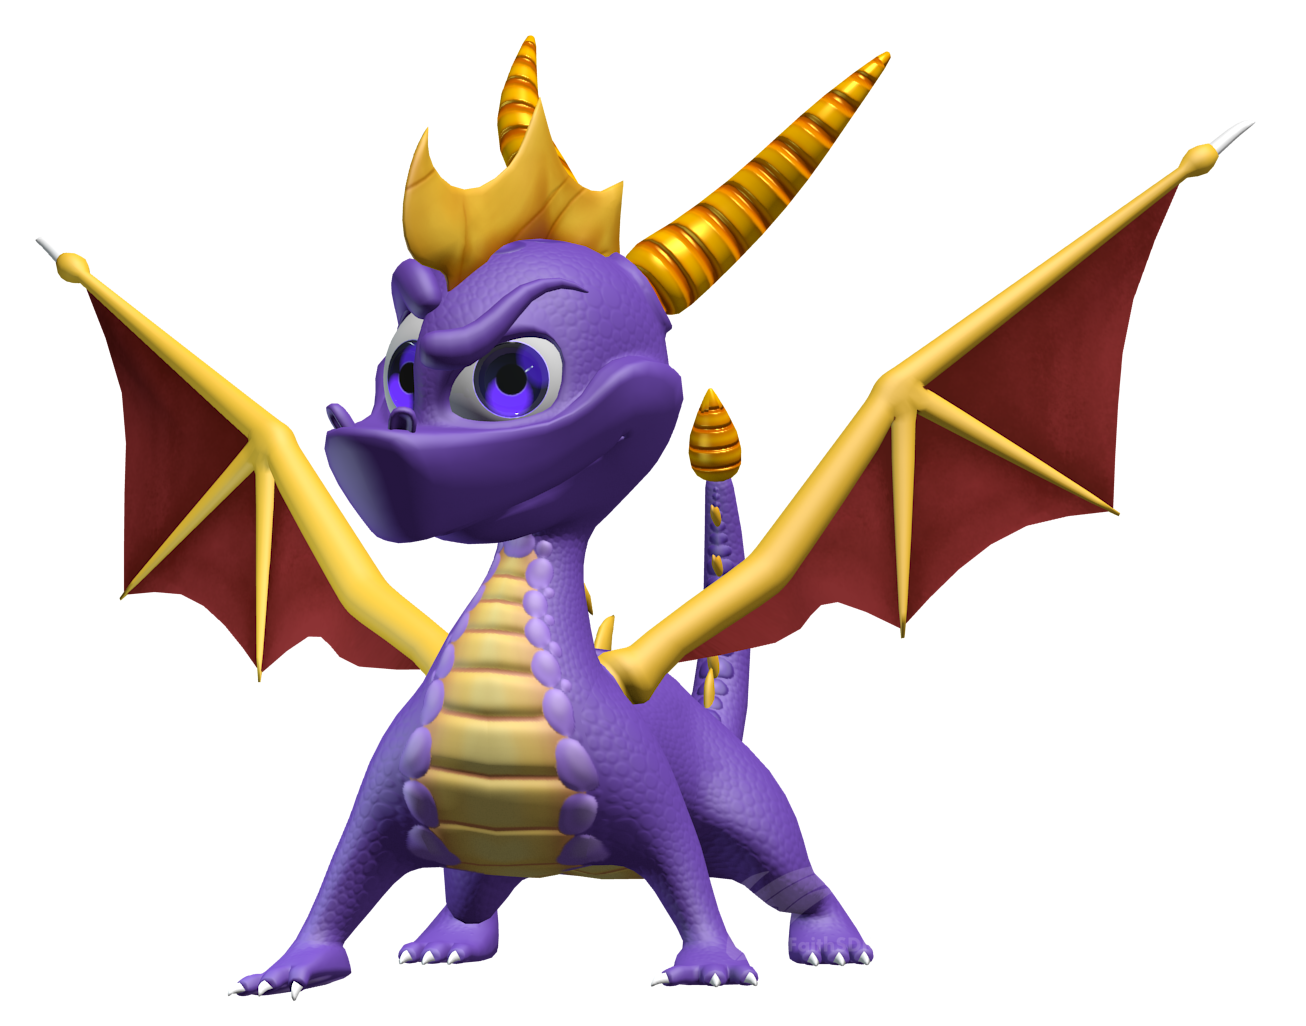 Spyro The Dragon Png (43+ images).